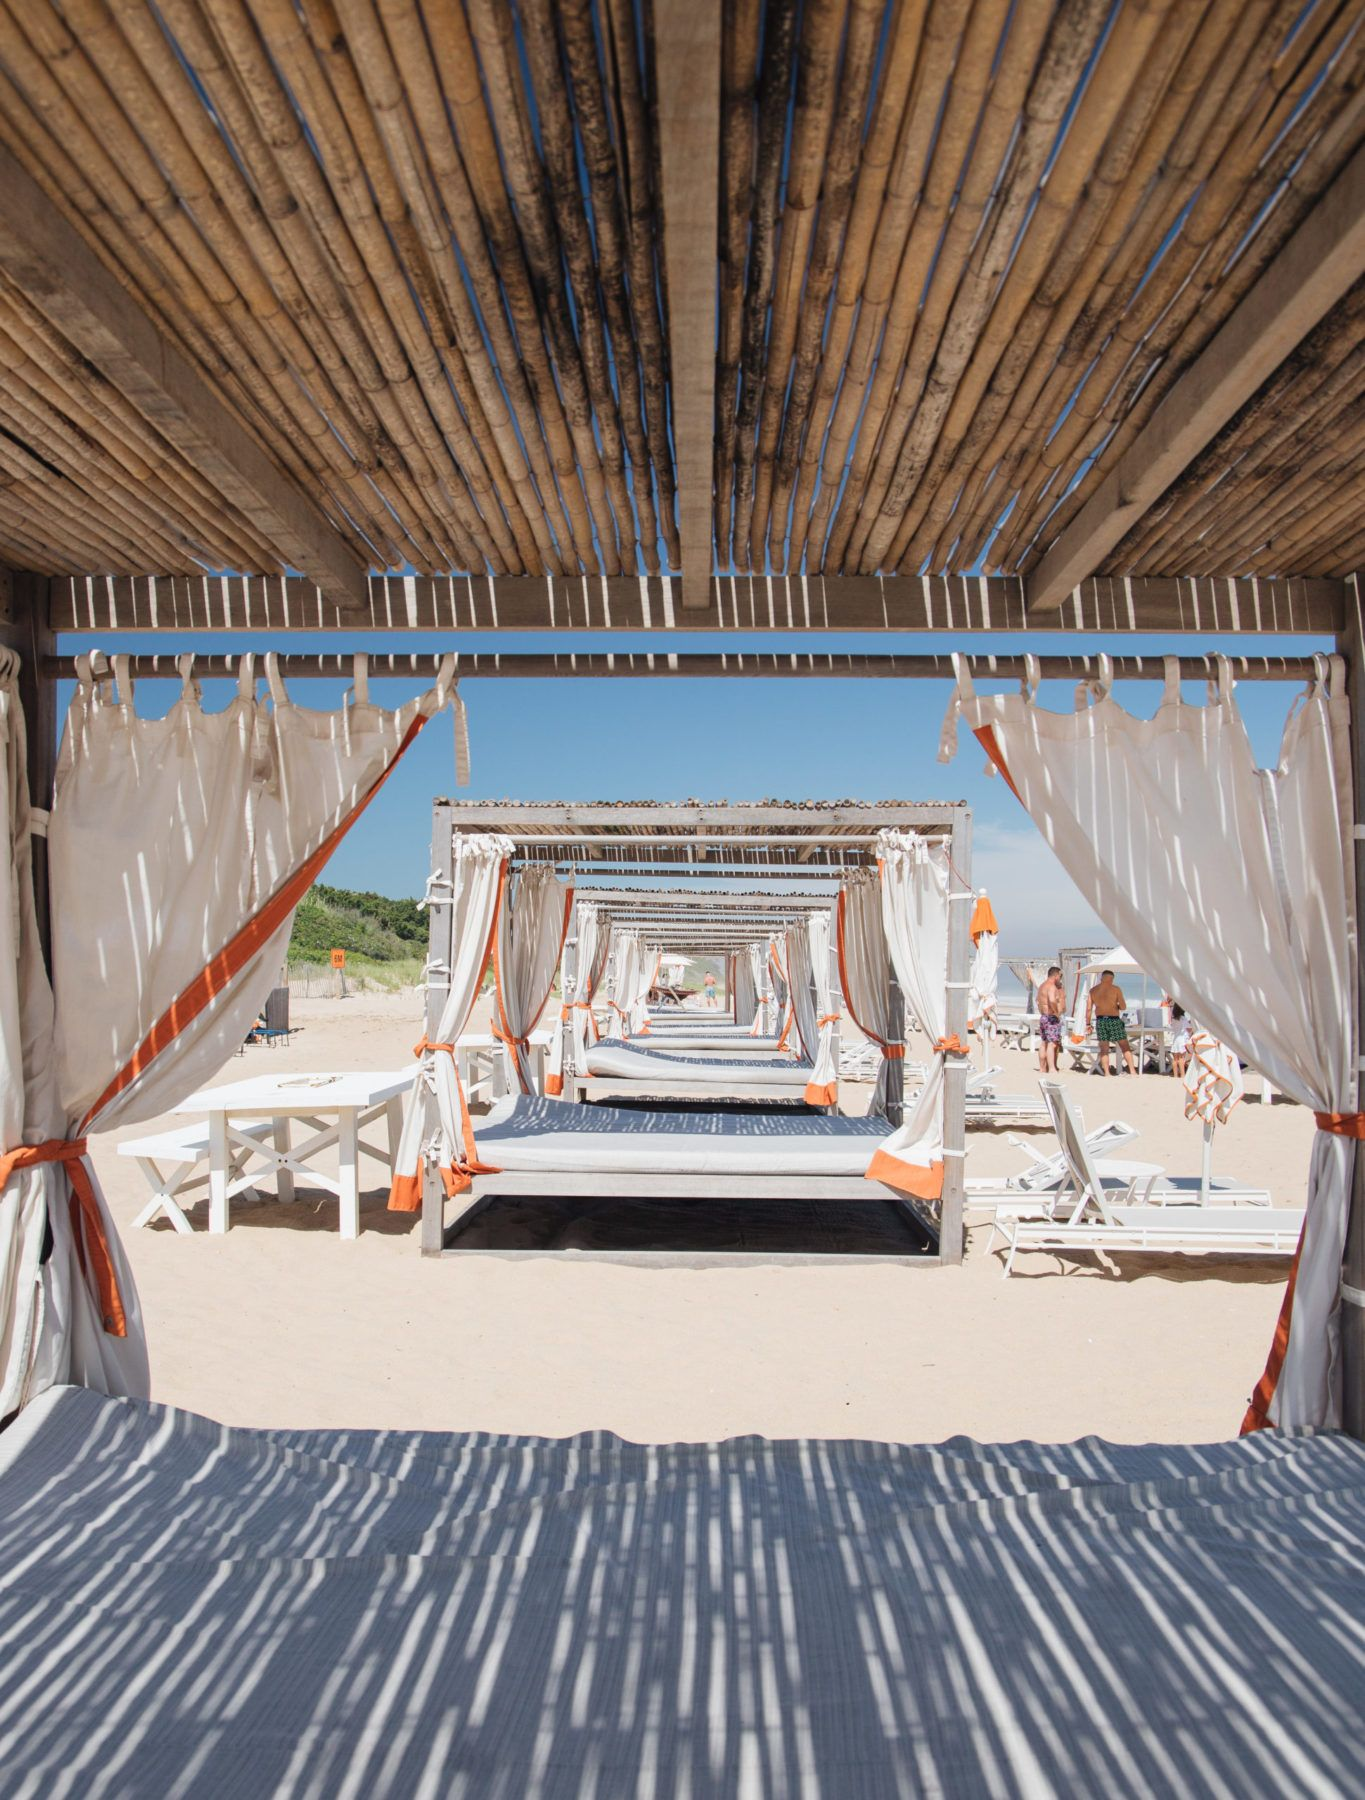 Daybeds on the beach